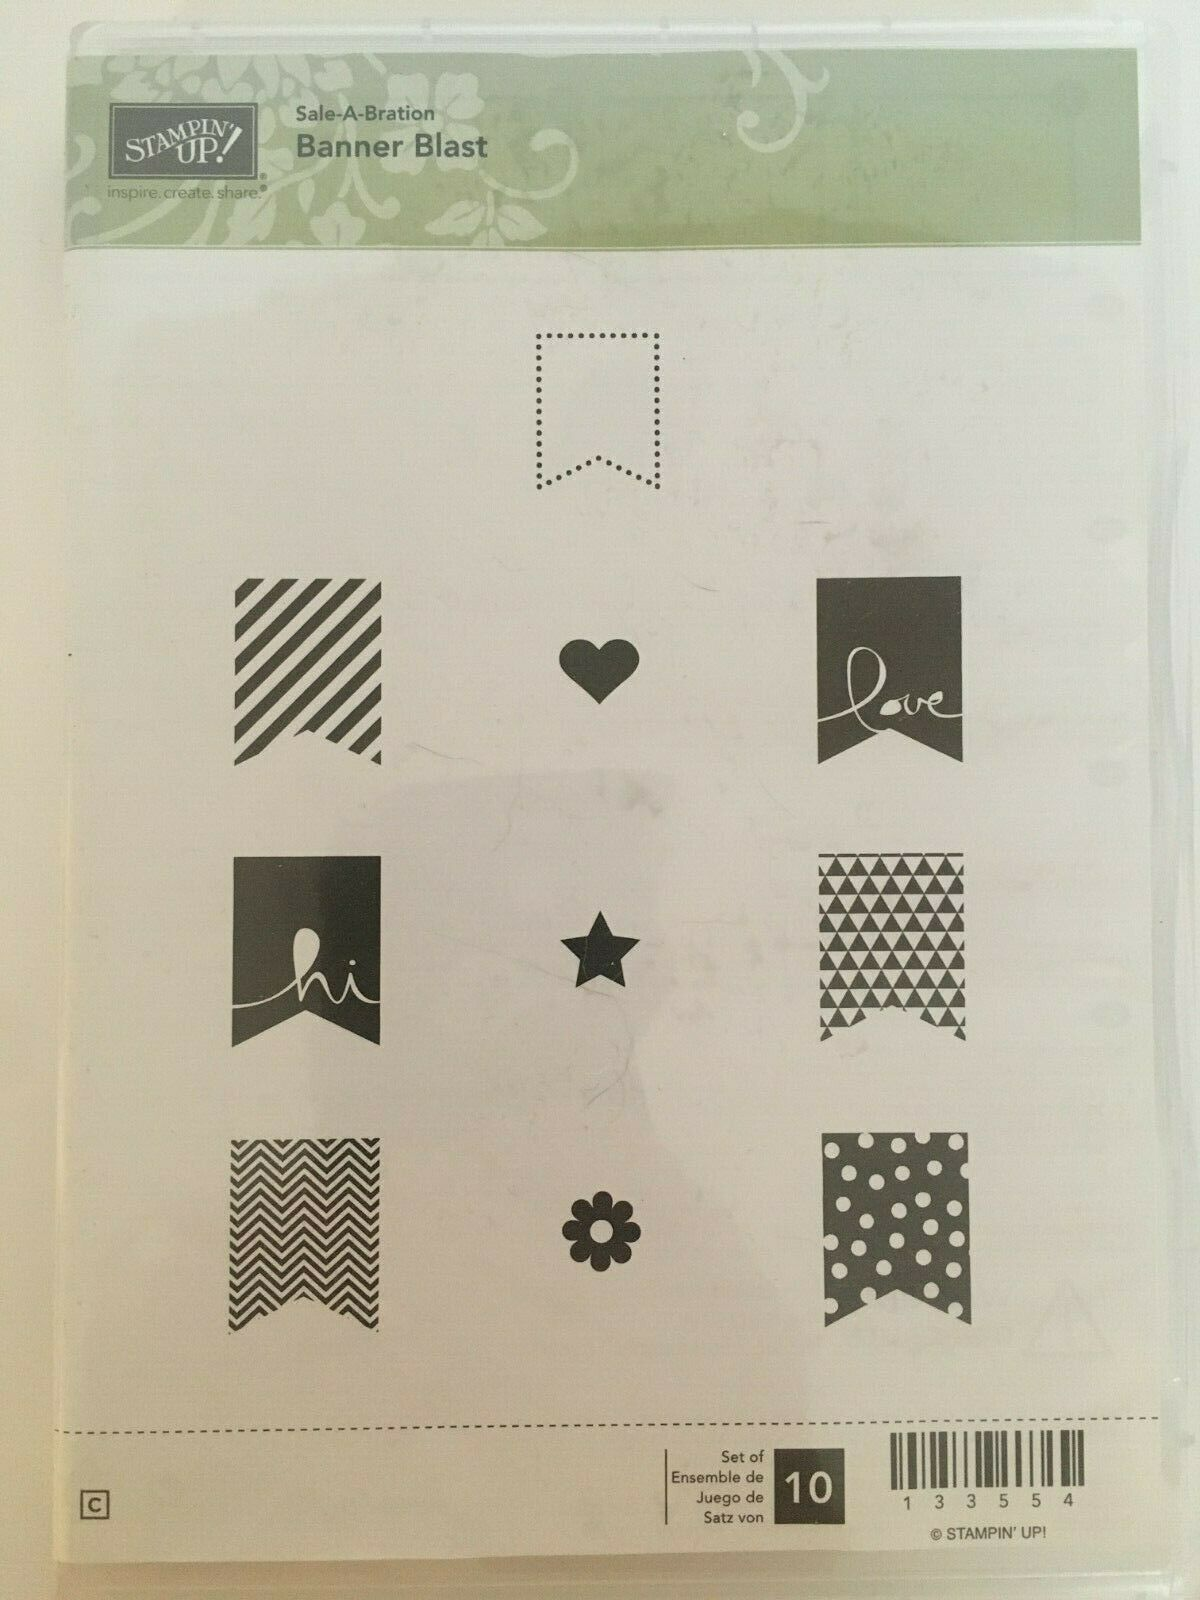 Primary image for Stampin Up Sale-A-Bration Banner Blast Celebration Hi Love Cling Stamps Set 10